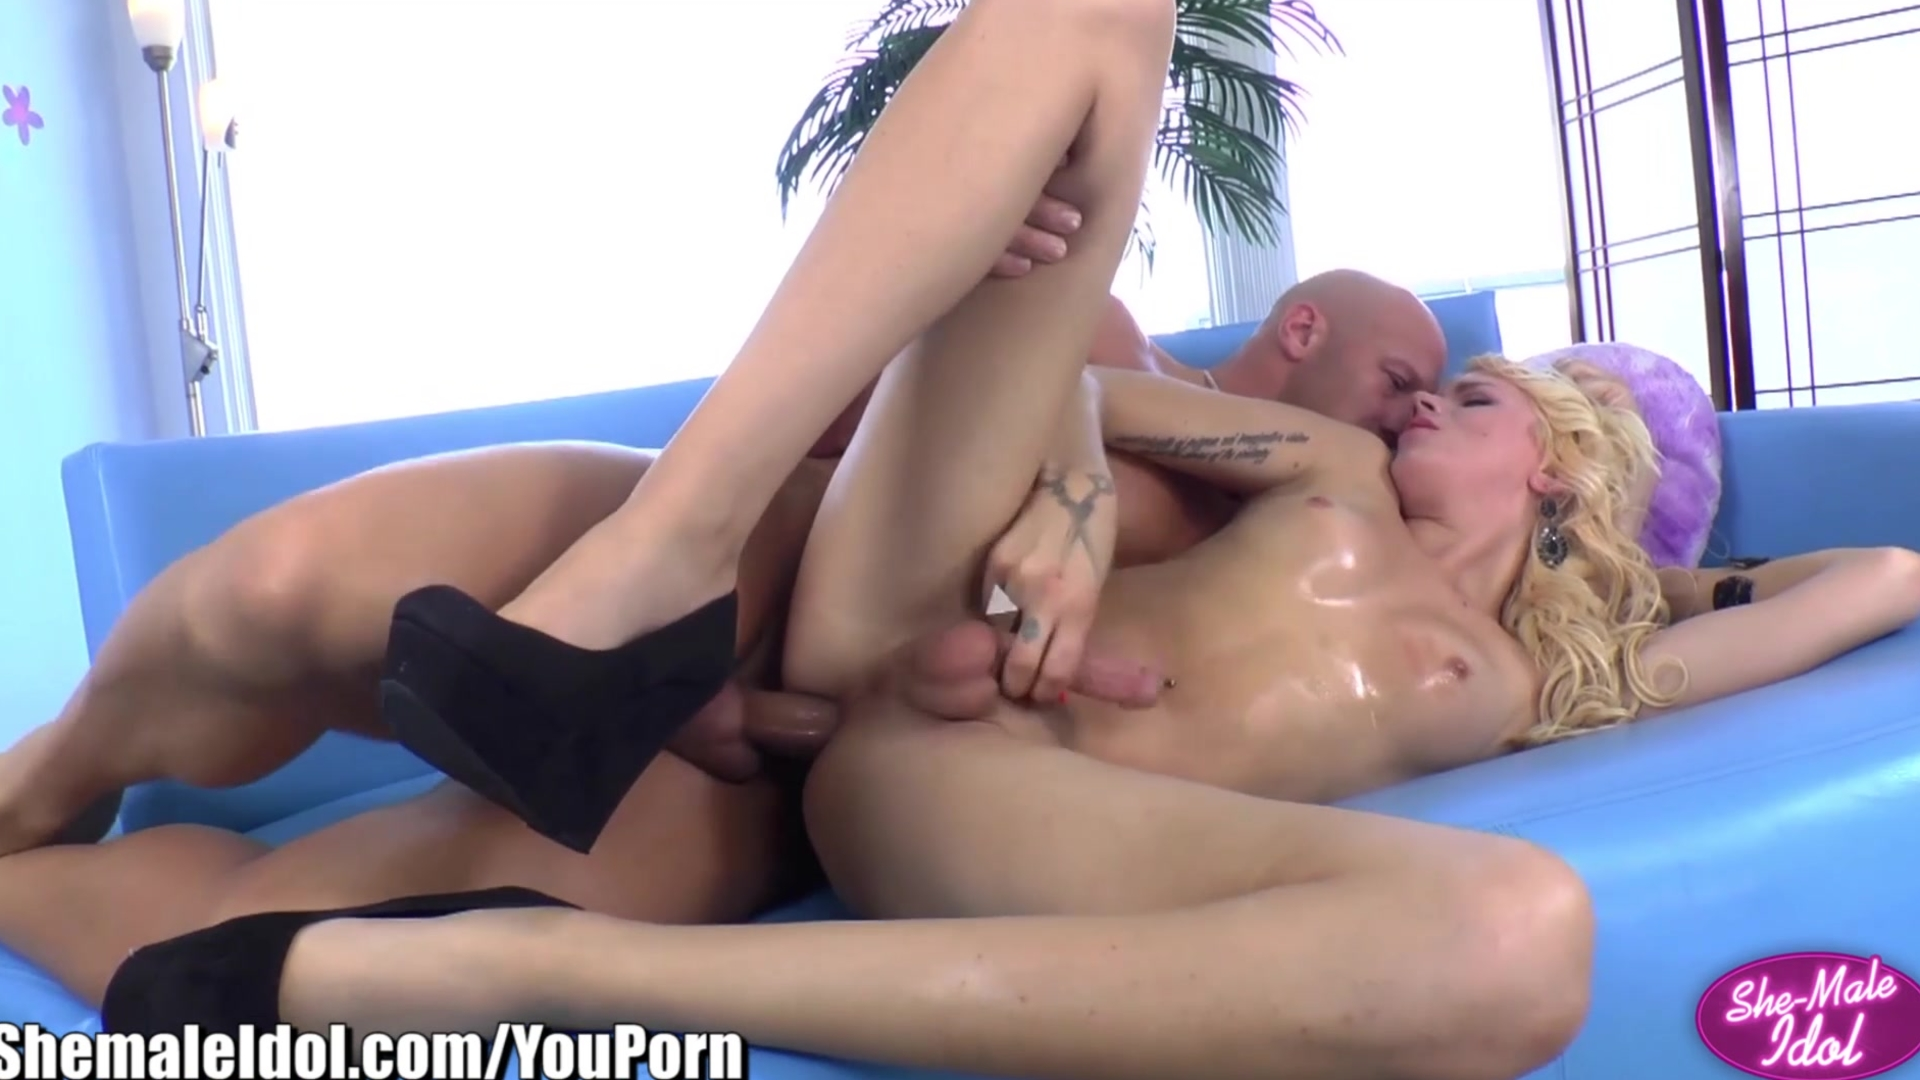 ShemaleIdol Blonde Tranny Fucked by Big-dick